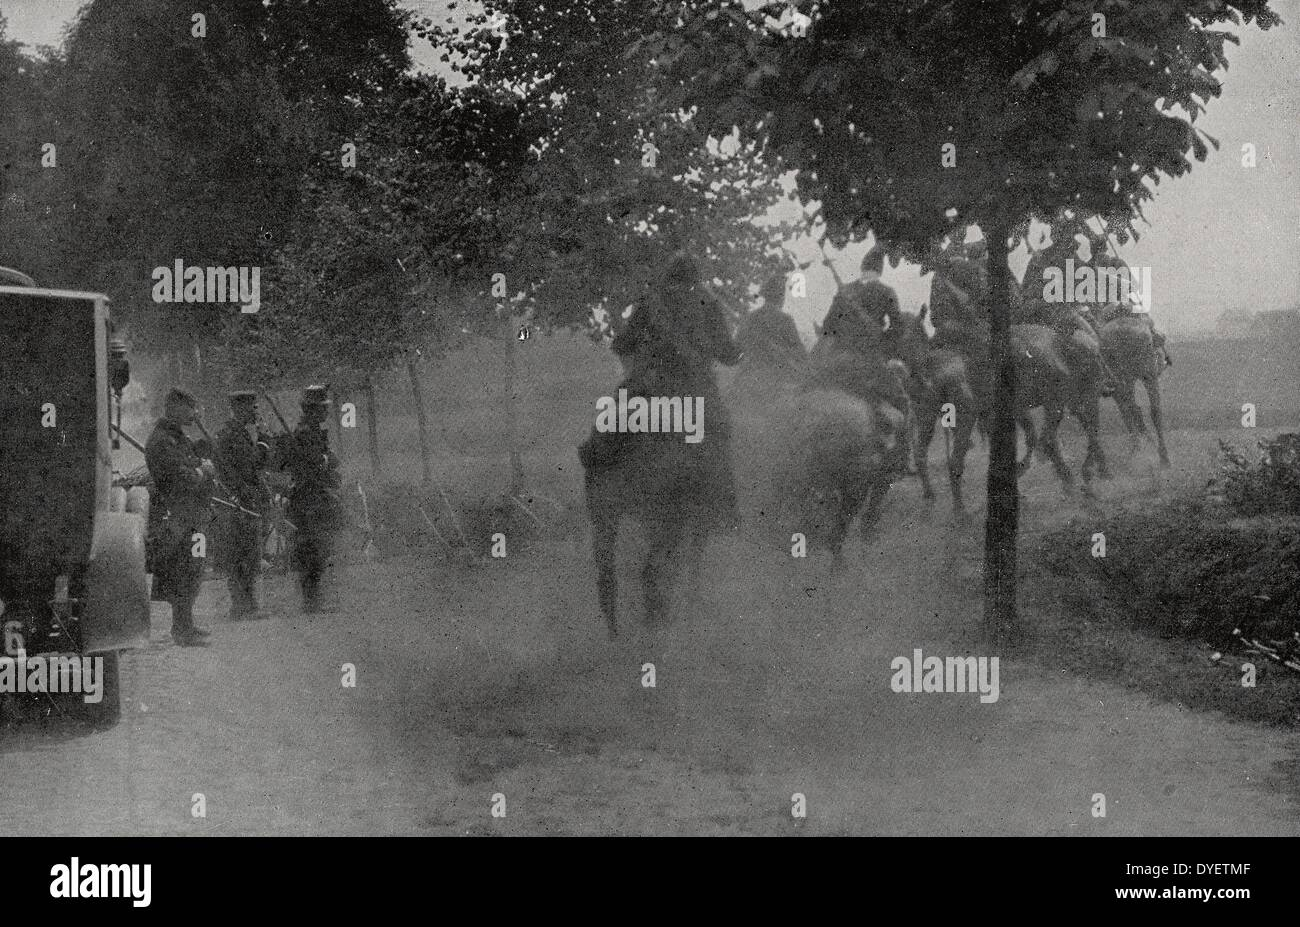 Belgian cavalry, exhausted by the engagement and the advance of the German army. 19140101 - Stock Image